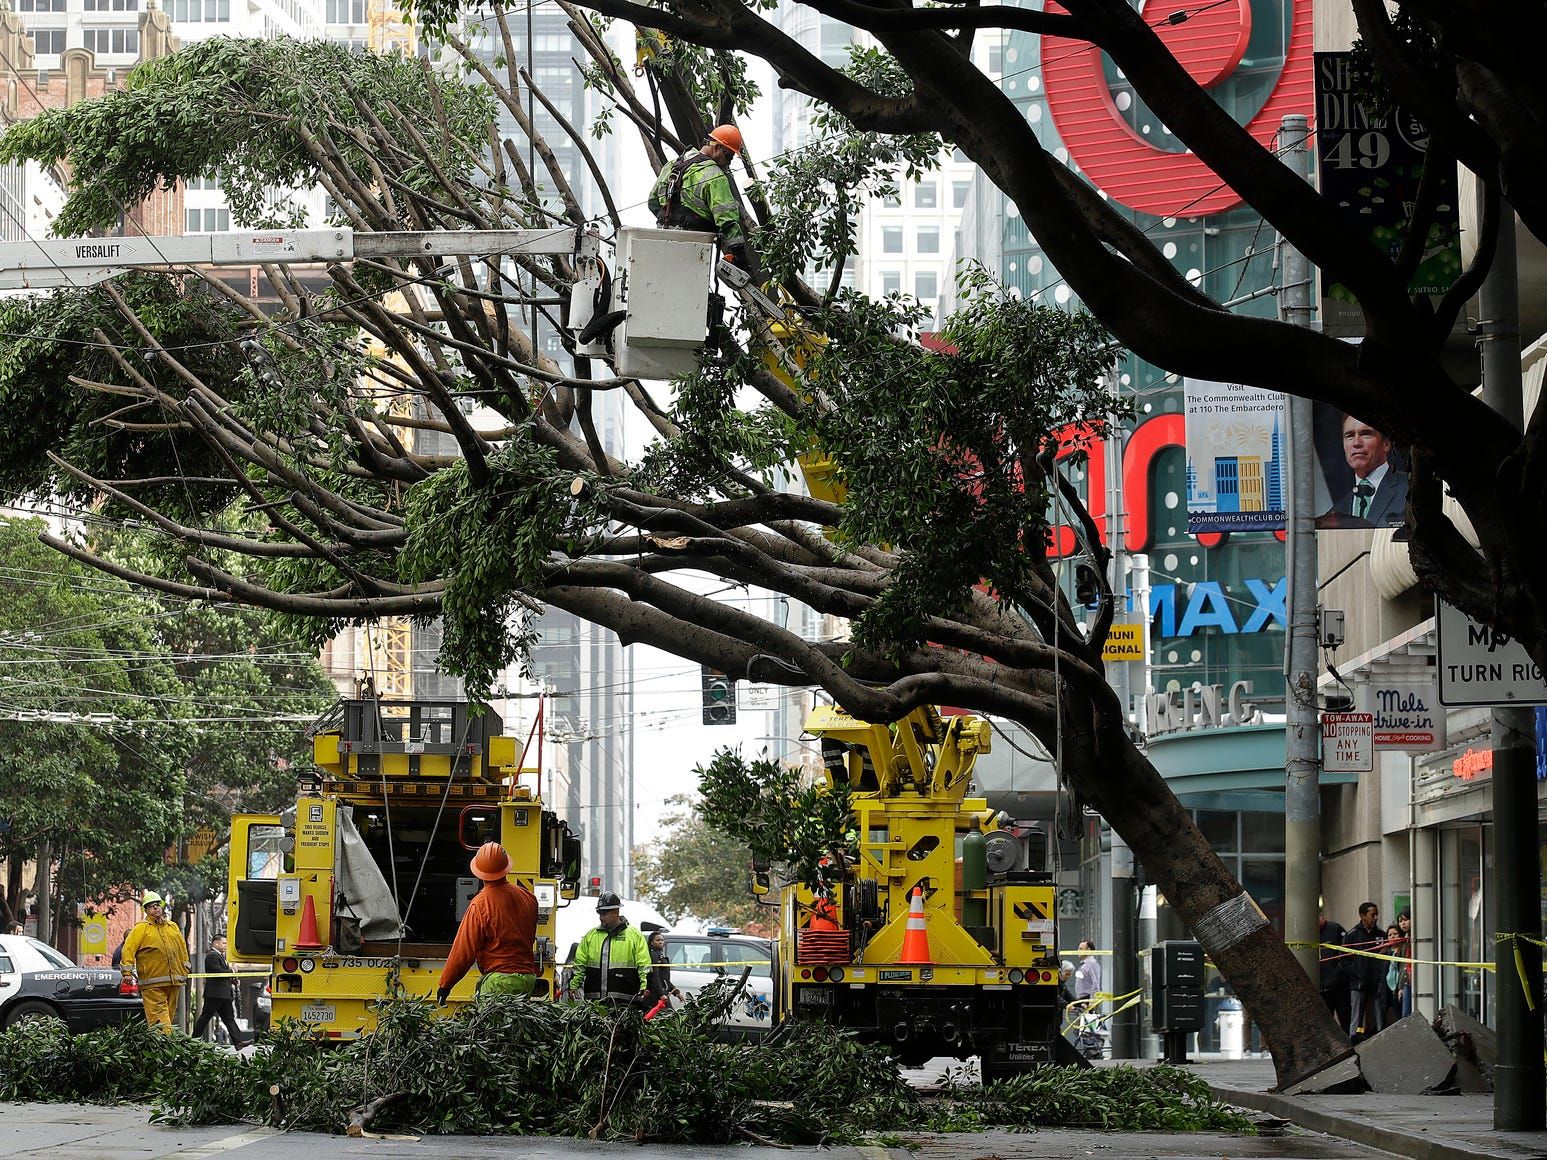 A work crew removes branches from a tree on Mission Street in San Francisco, Thursday, Jan. 17, 2019.